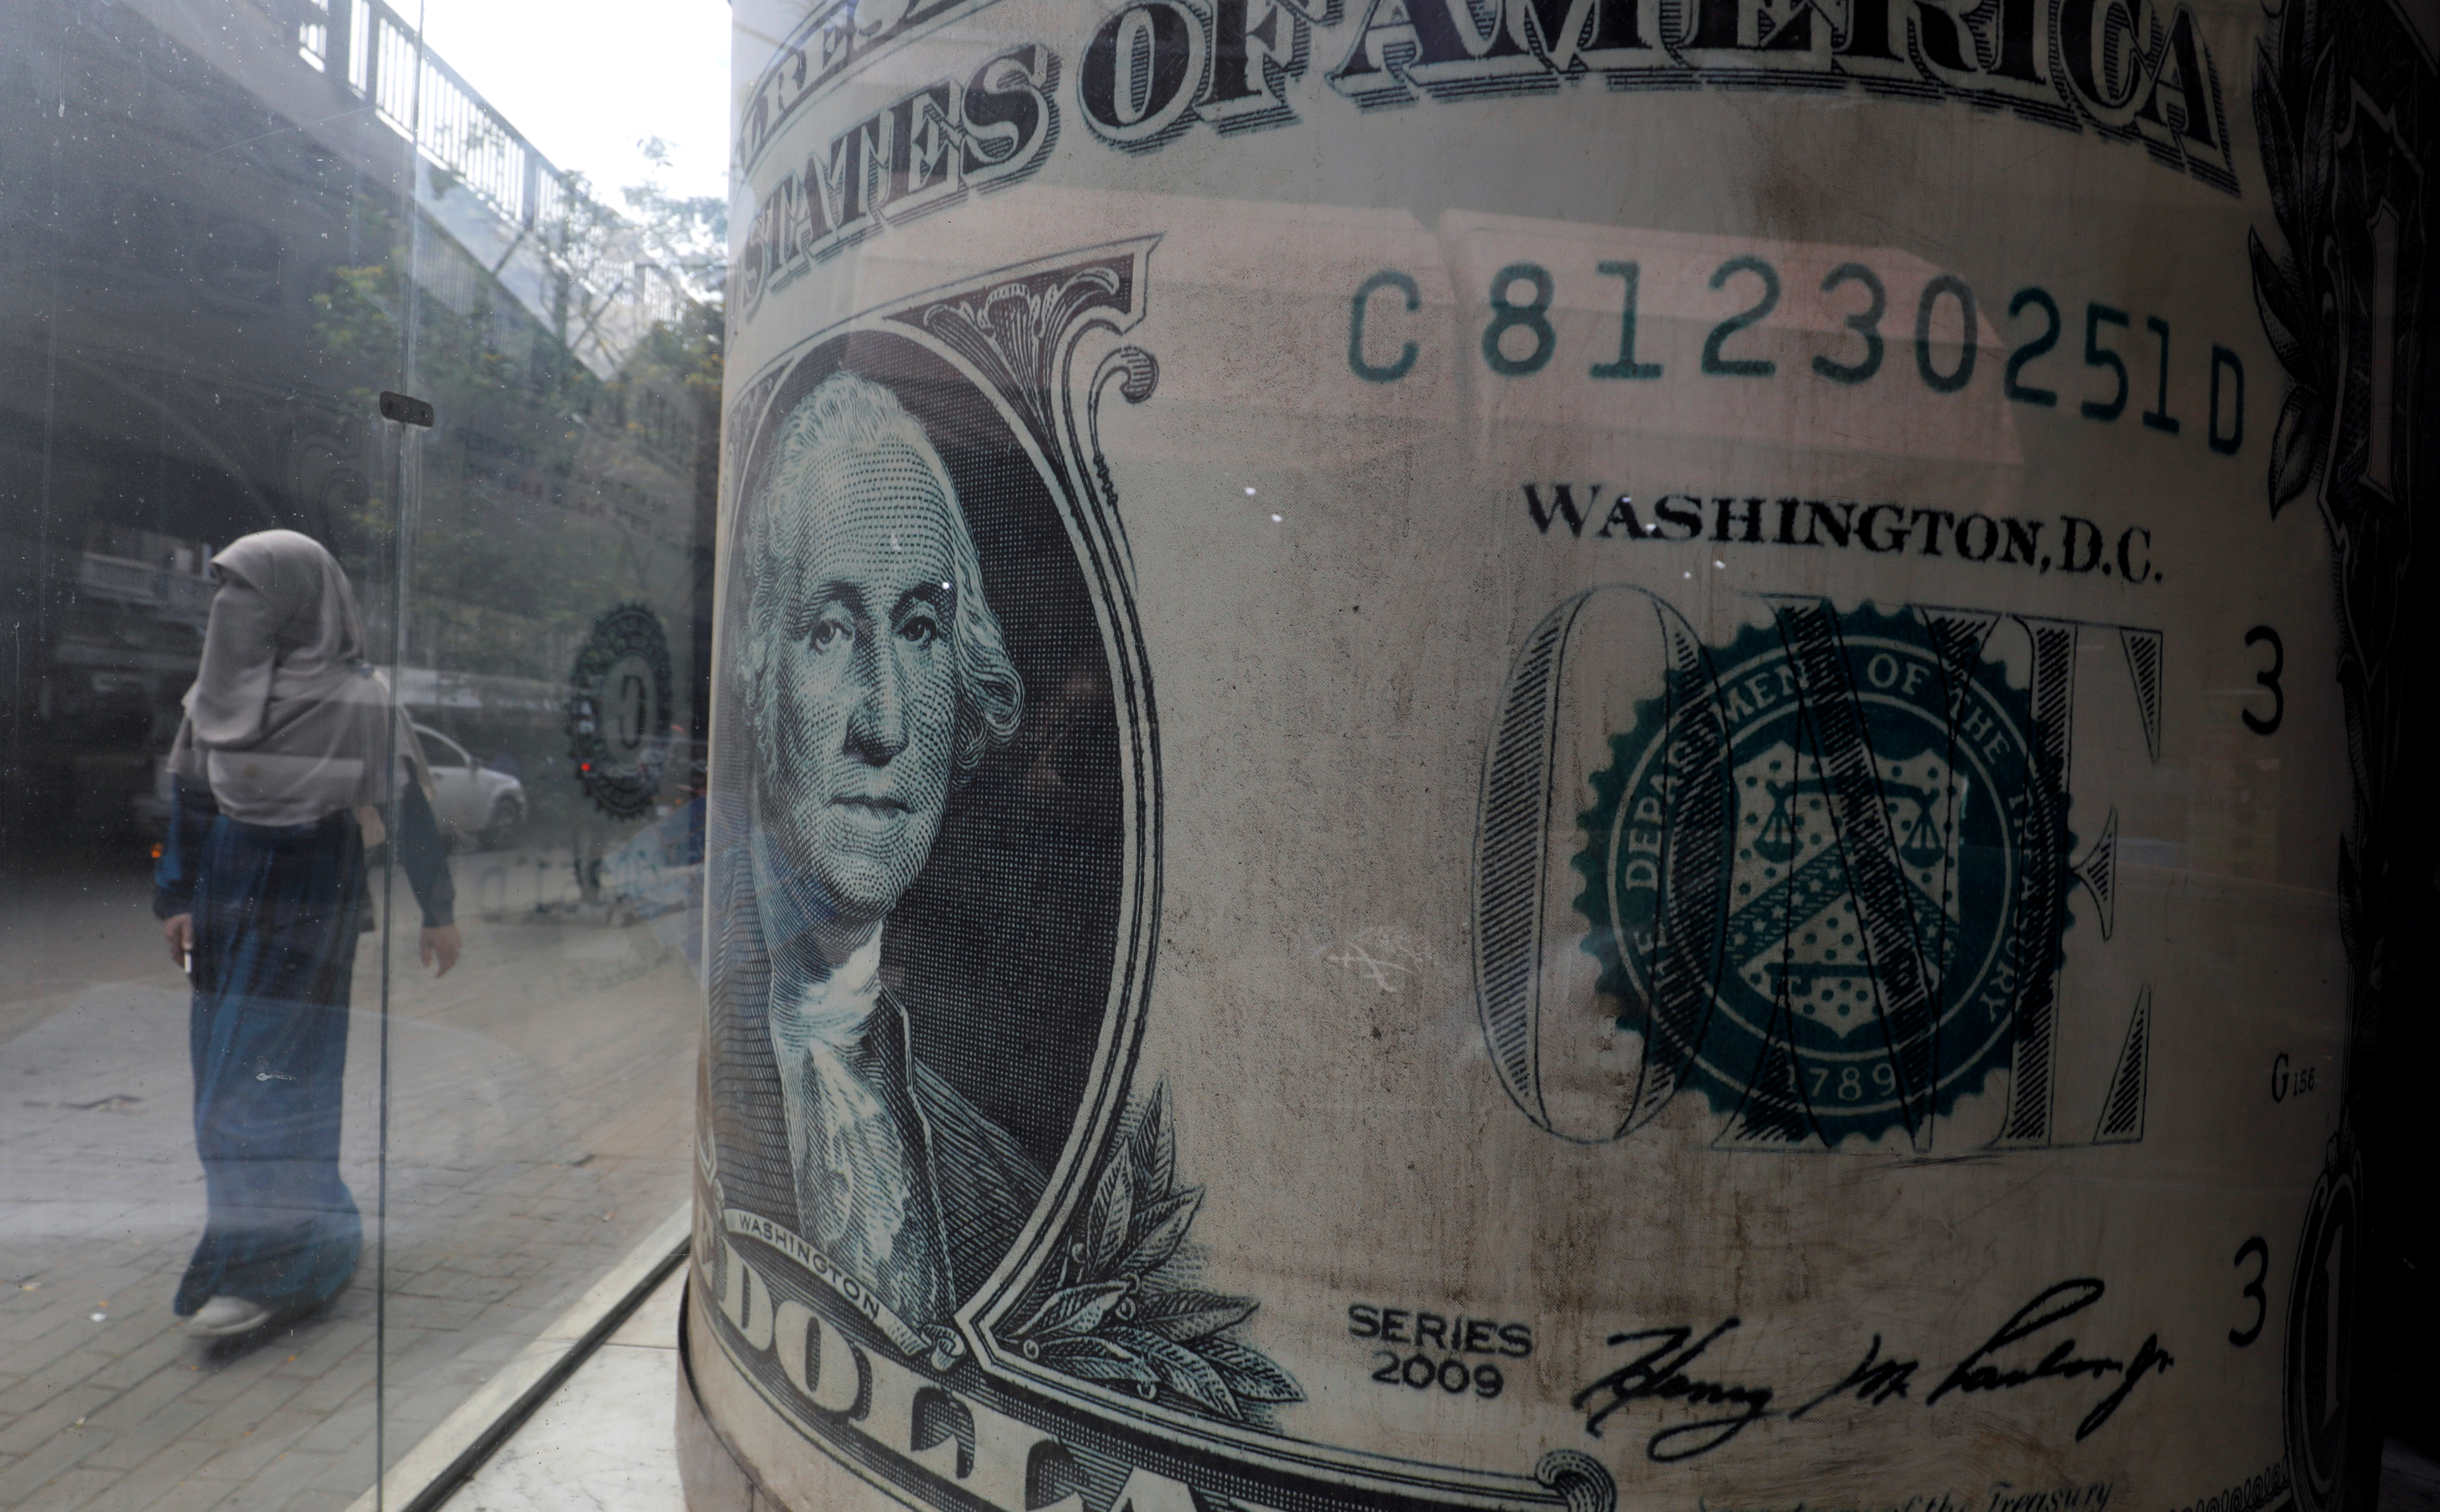 A woman wearing a full veil (niqab) walks in front of a currency exchange bureau advertisement showing an image of the U.S. dollar in Cairo, Egypt March 17, 2020. REUTERS/Amr Abdallah Dalsh/Files